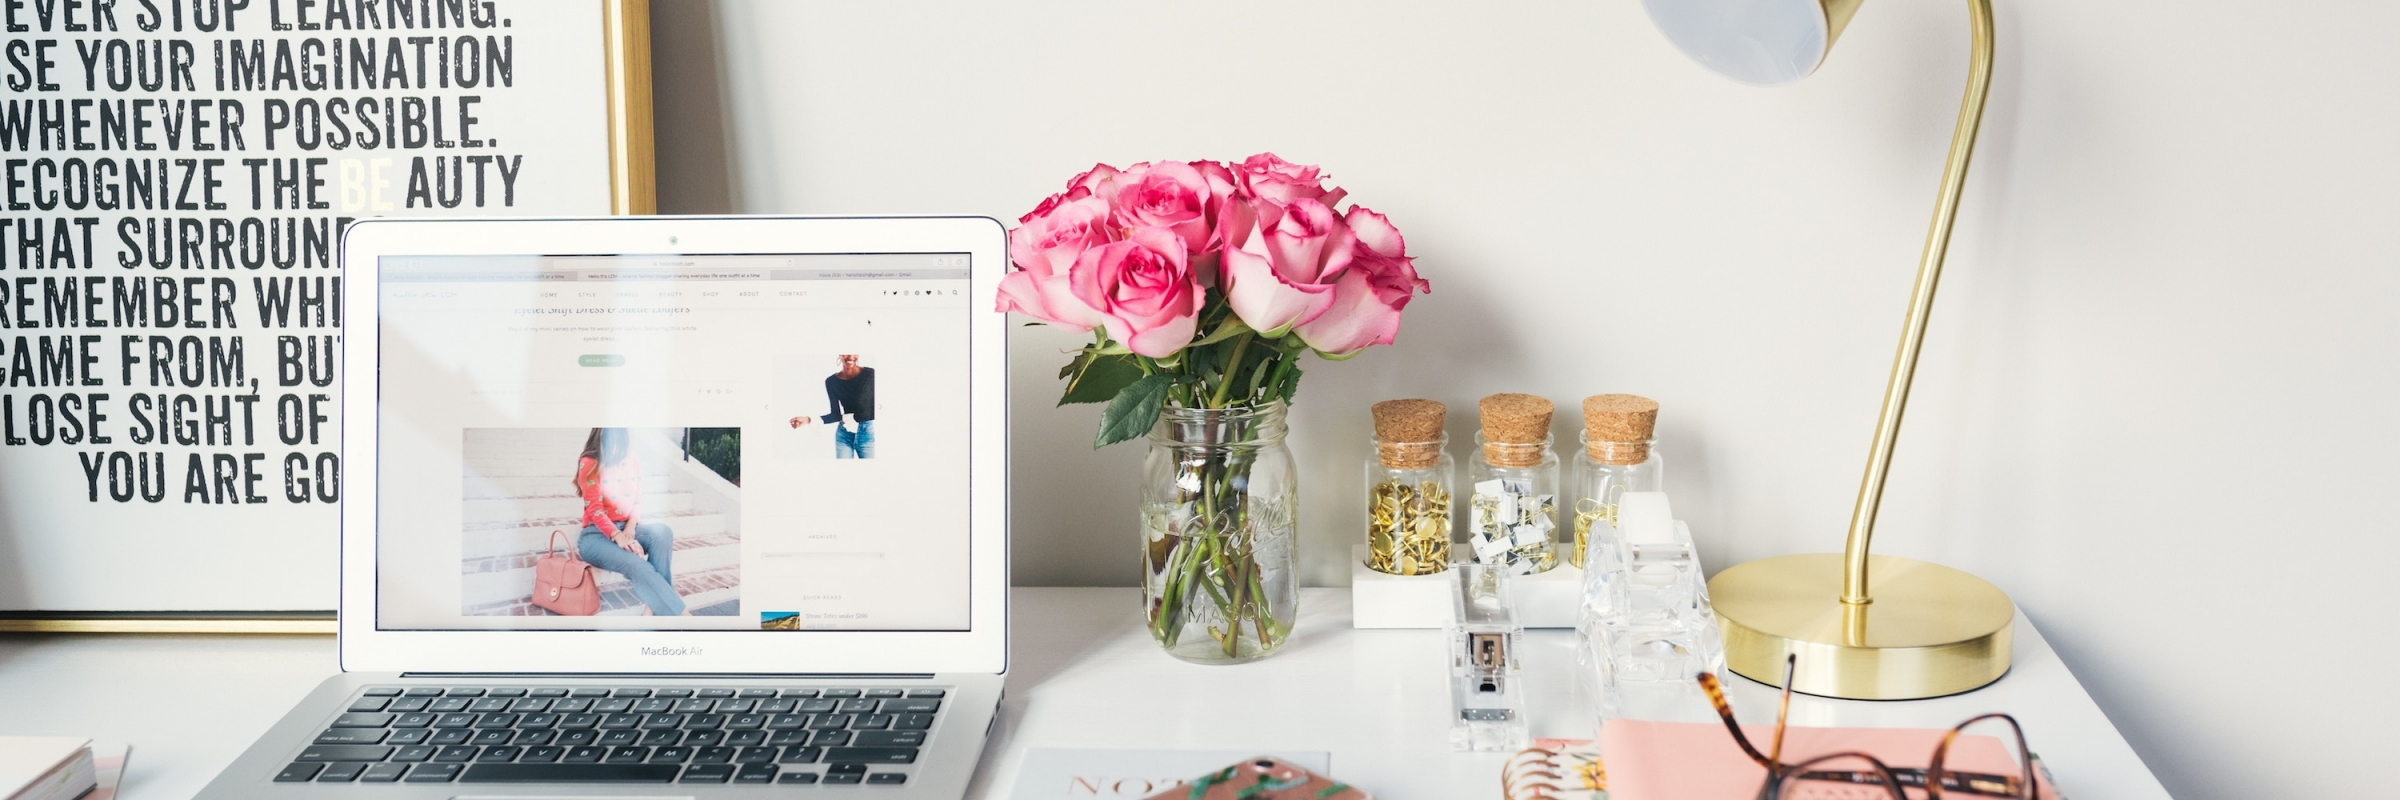 Coffee and Blogging with The Blogarista